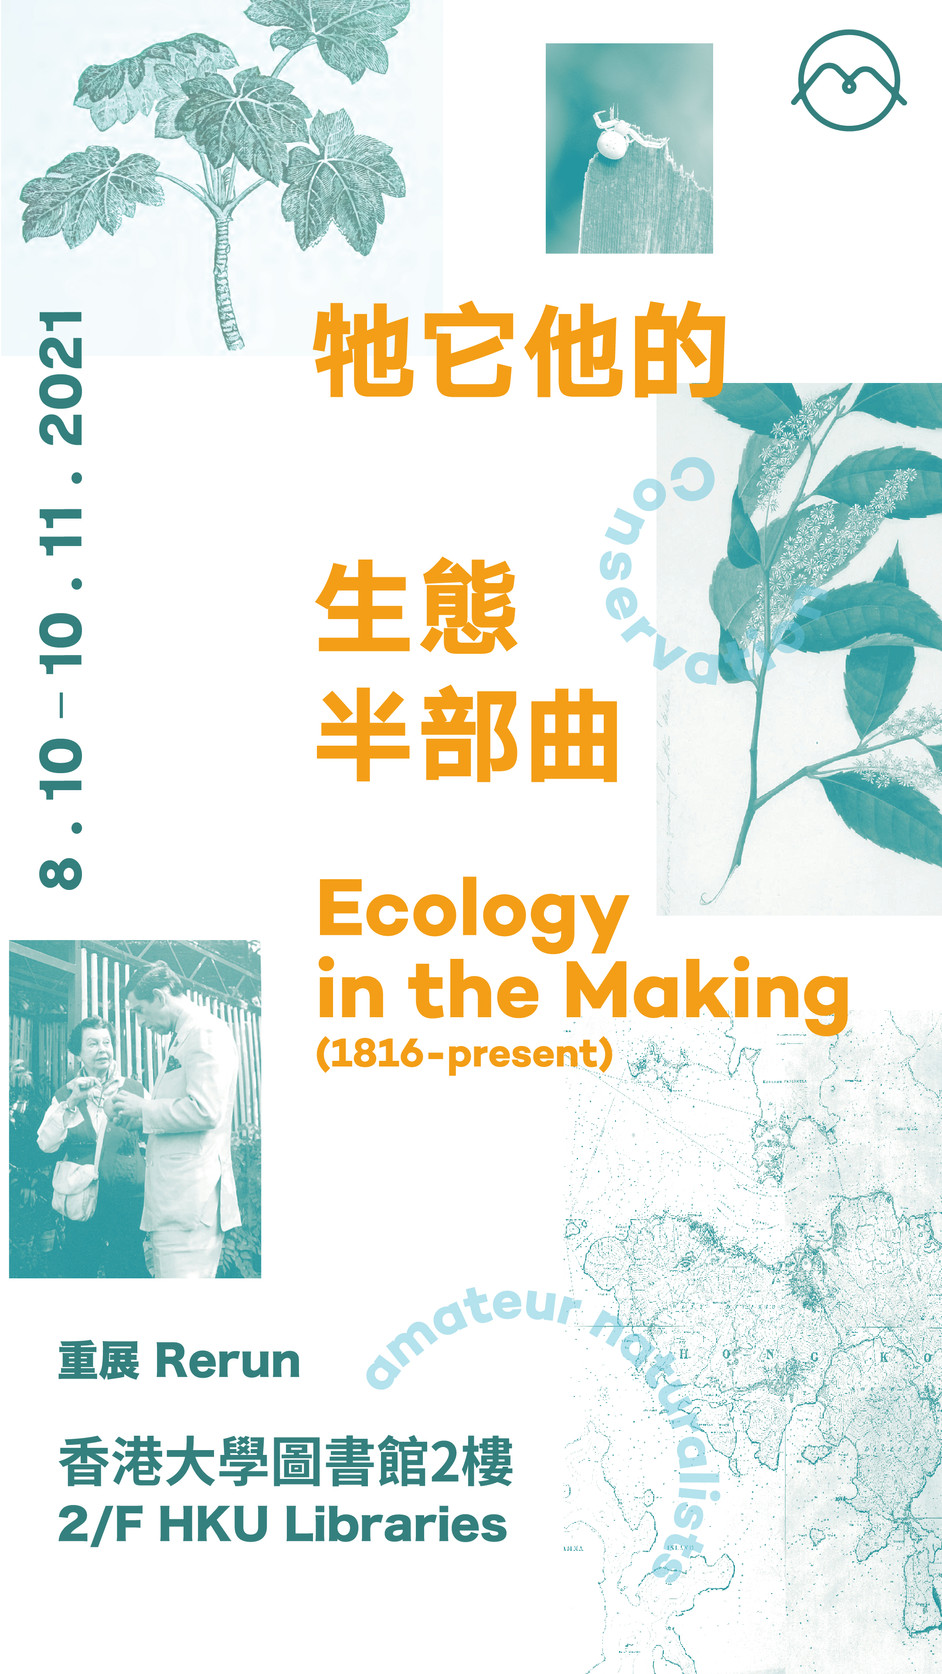 Another chance to see Ecology in the making (1816-present)